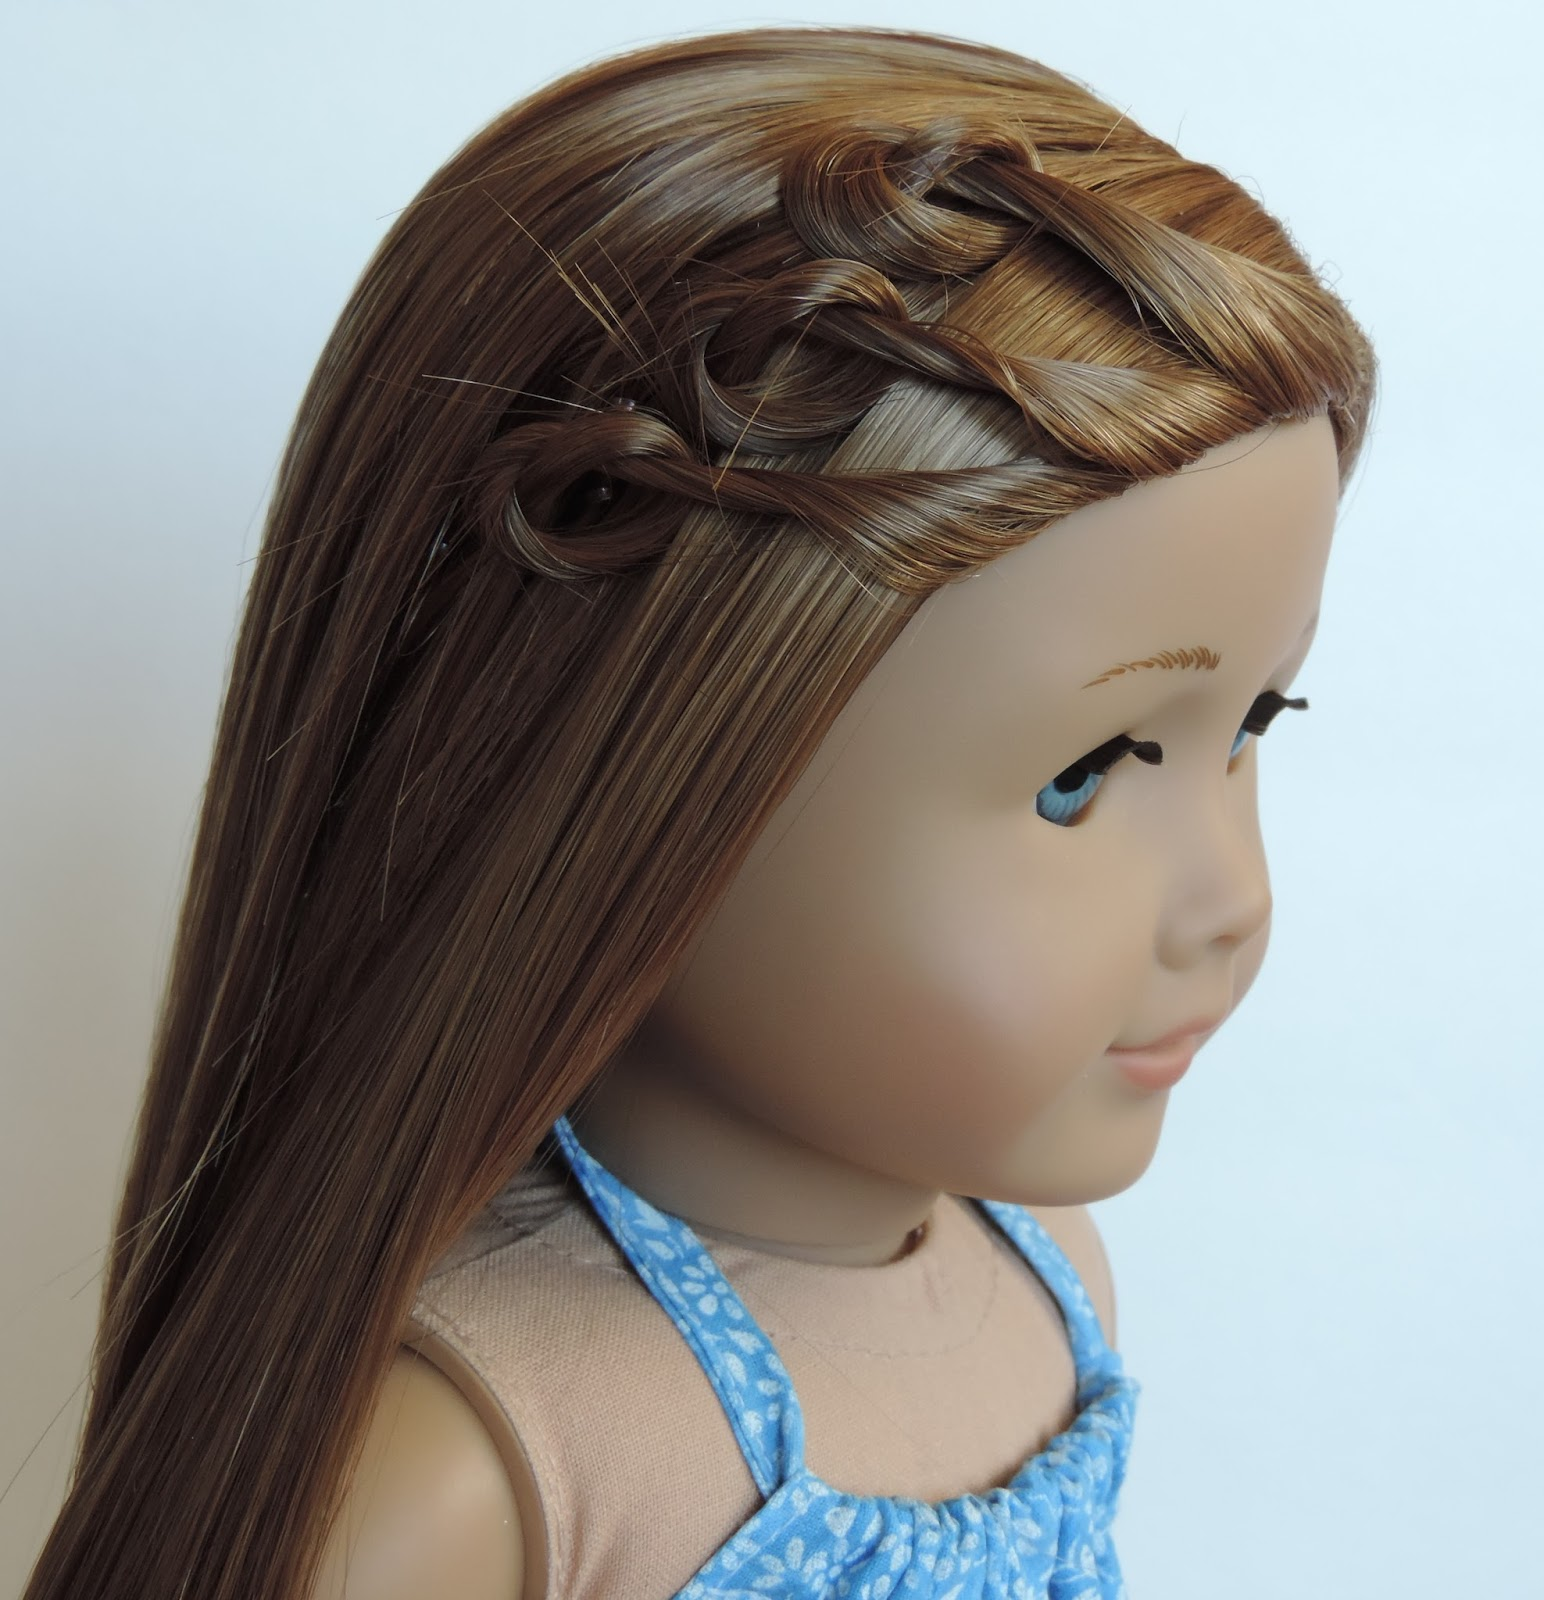 12+ Easy Hairstyles To Do On Dolls, New Concept!